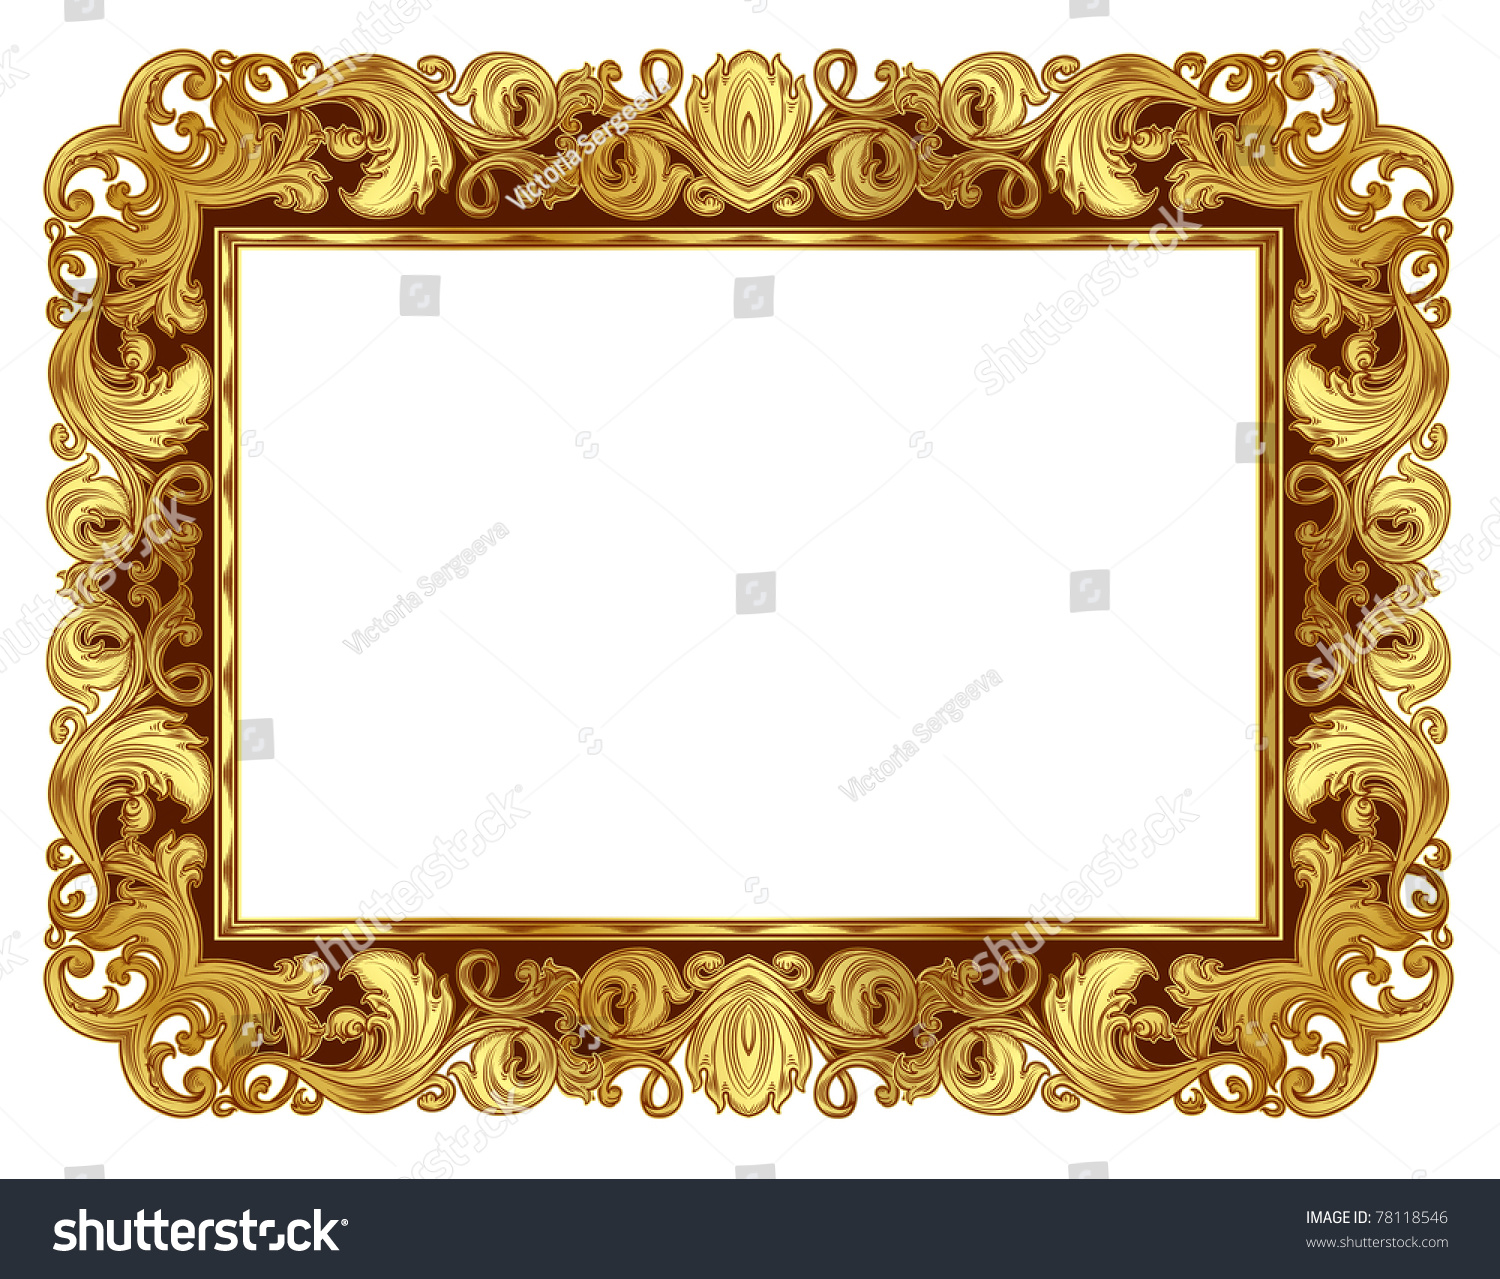 gold ornate frame in the renaissance style in isolation